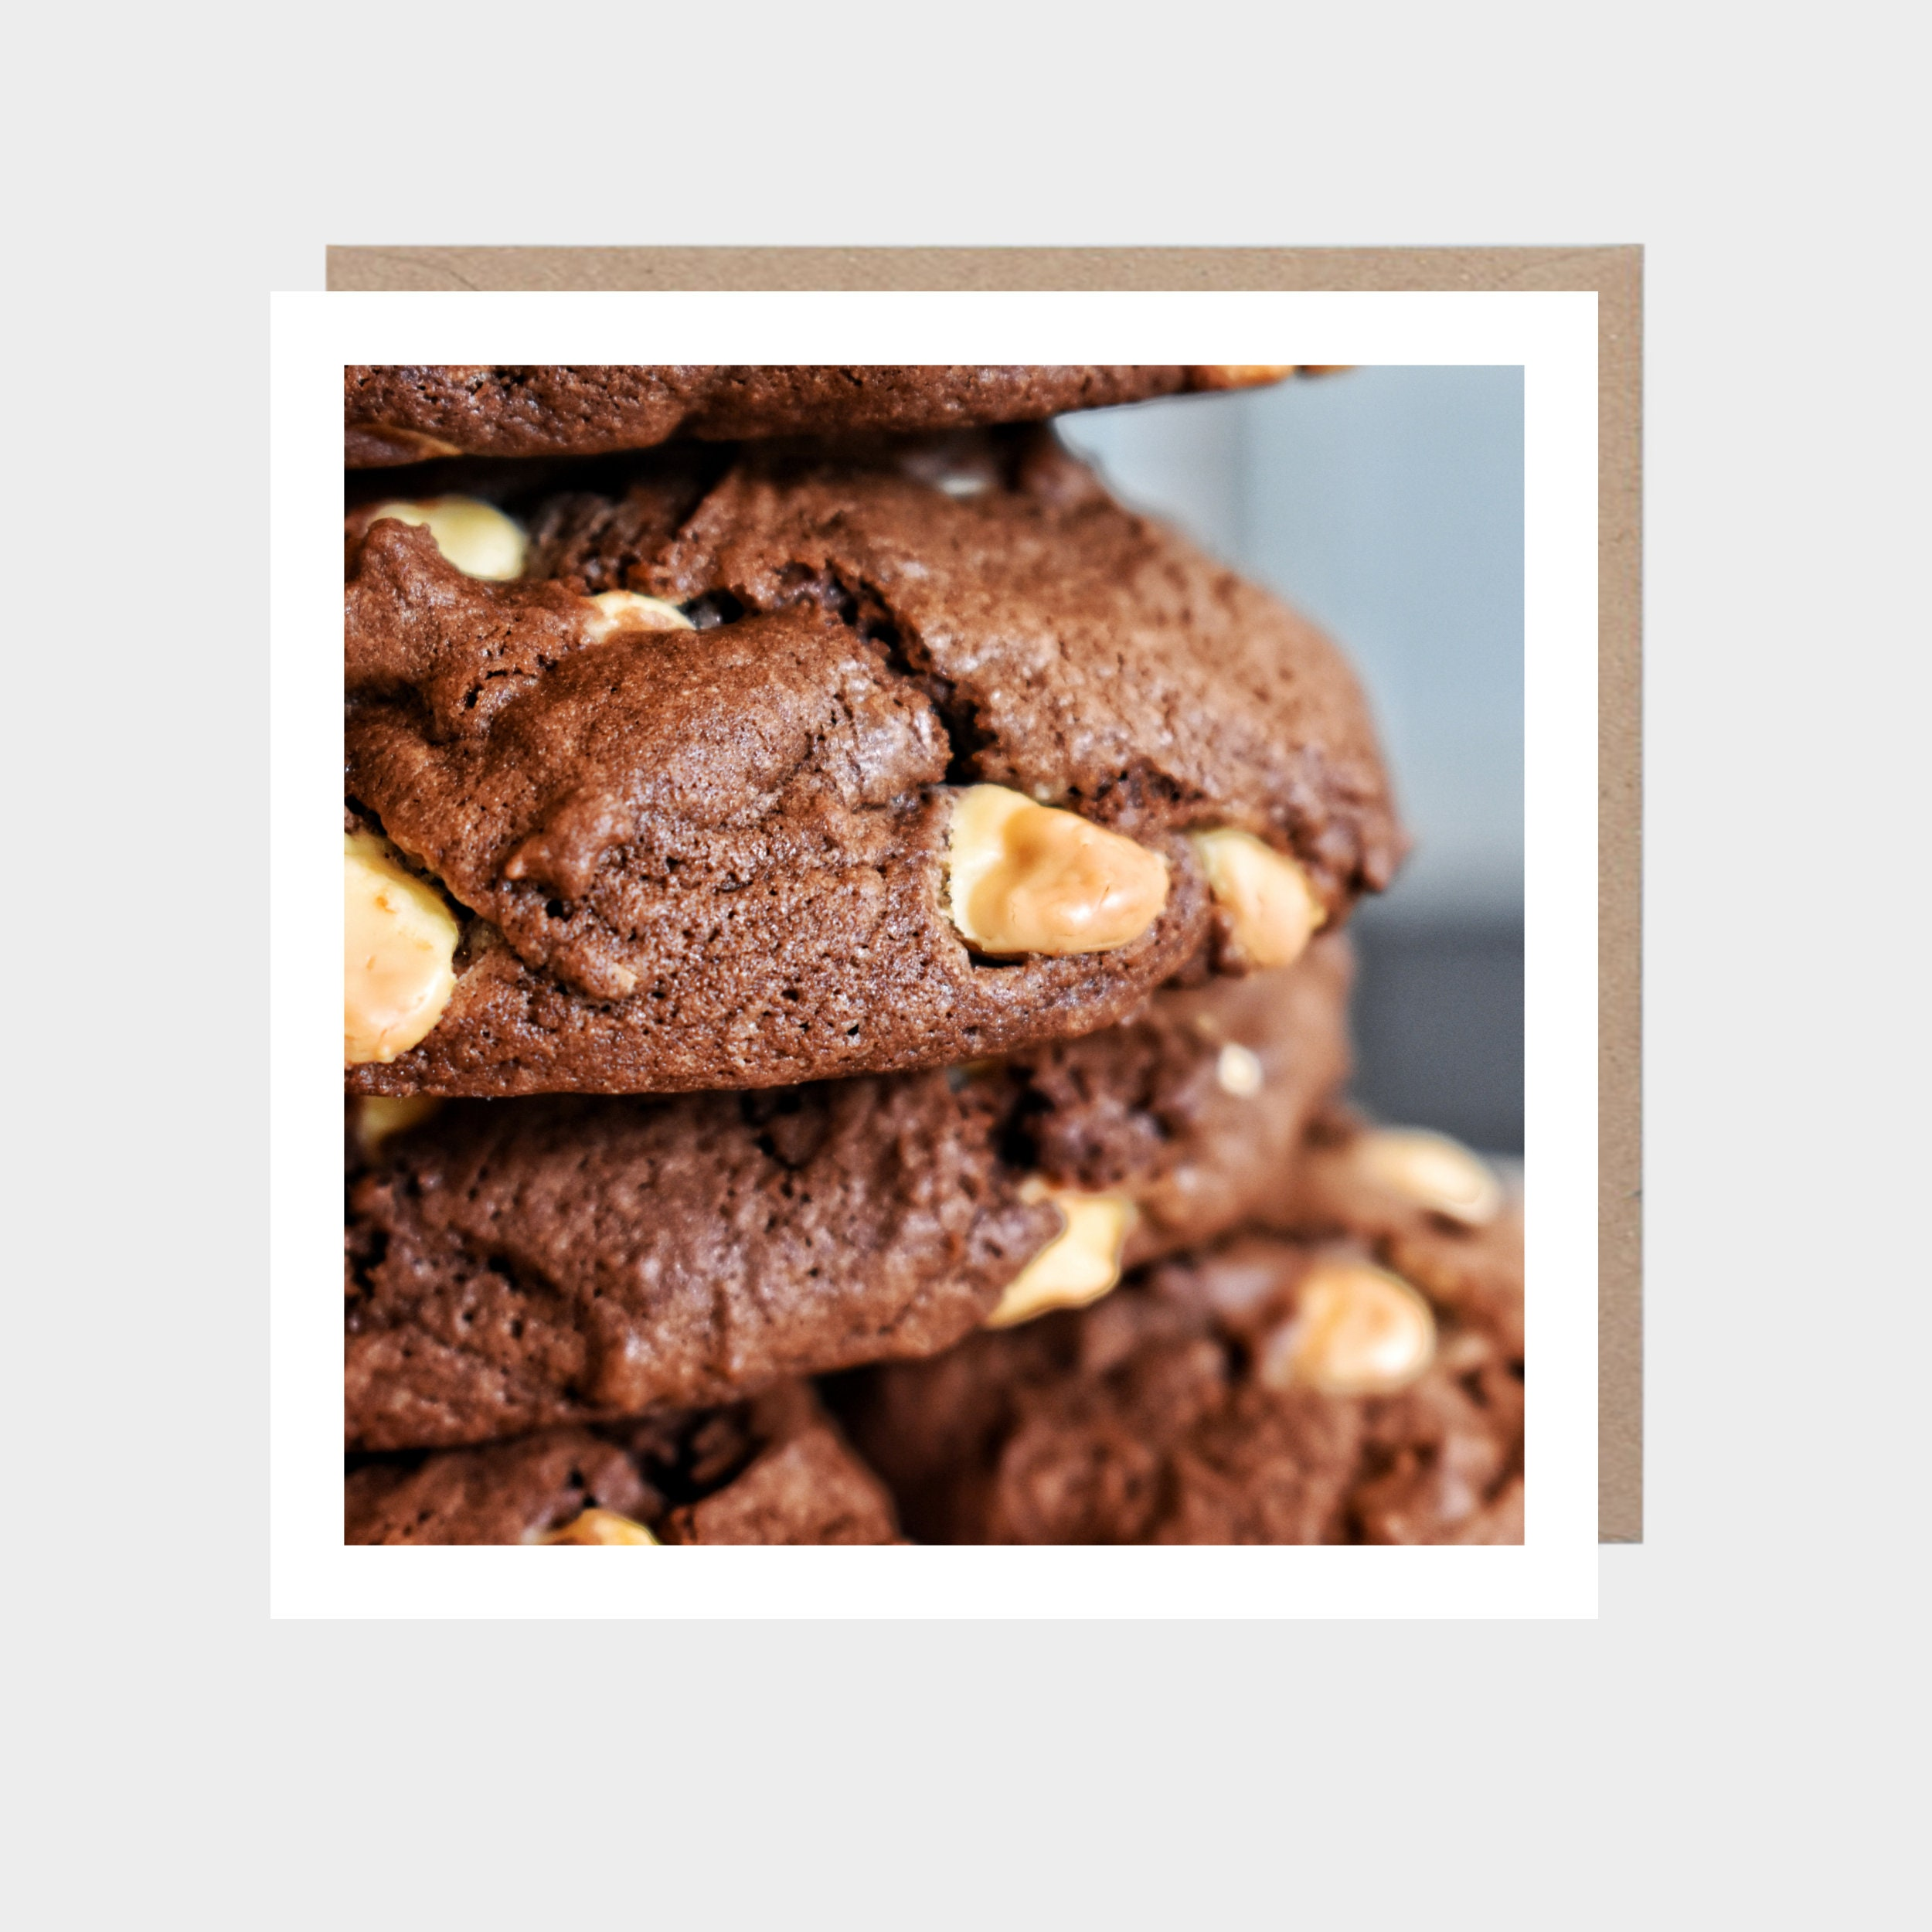 Square card with a close-up photo of chocolate cookies, with a brown kraft envelope